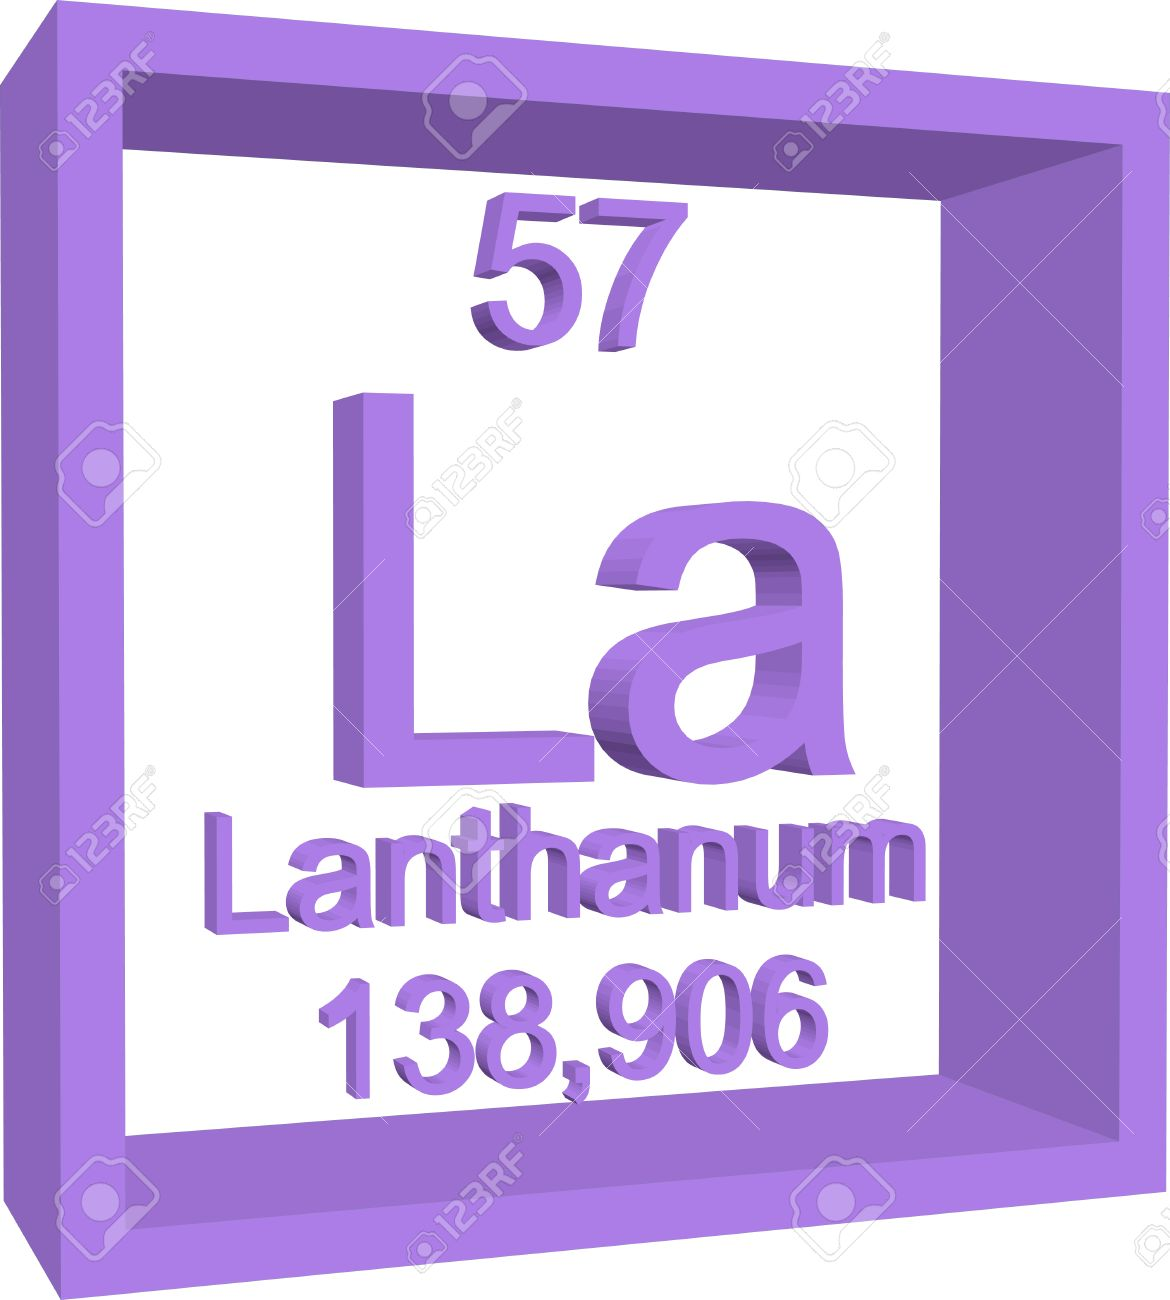 Periodic table of elements lanthanum royalty free cliparts periodic table of elements lanthanum stock vector 57971836 gamestrikefo Gallery